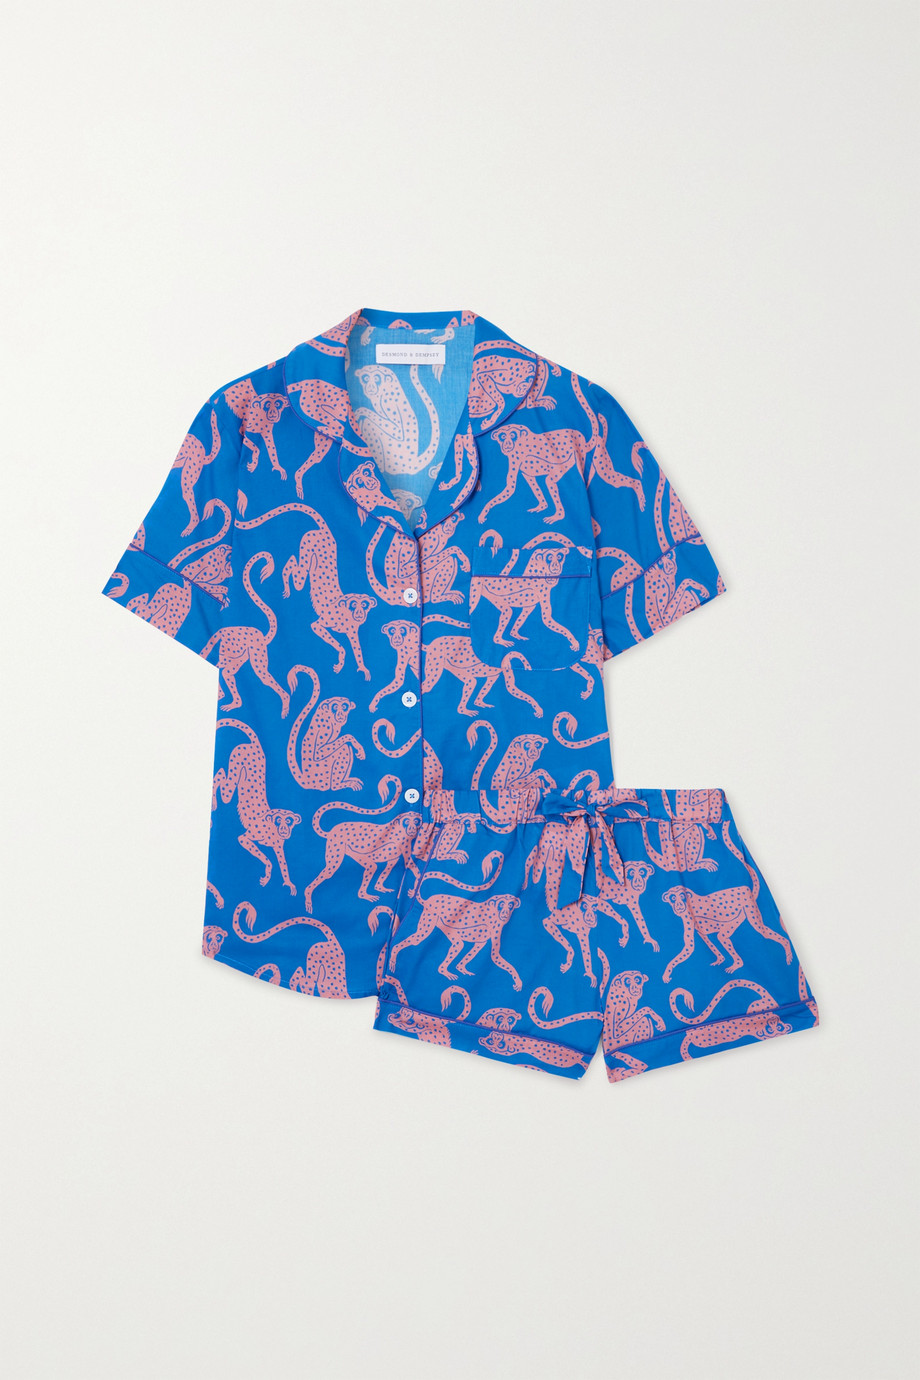 DESMOND & DEMPSEY Chango printed organic cotton pajama set